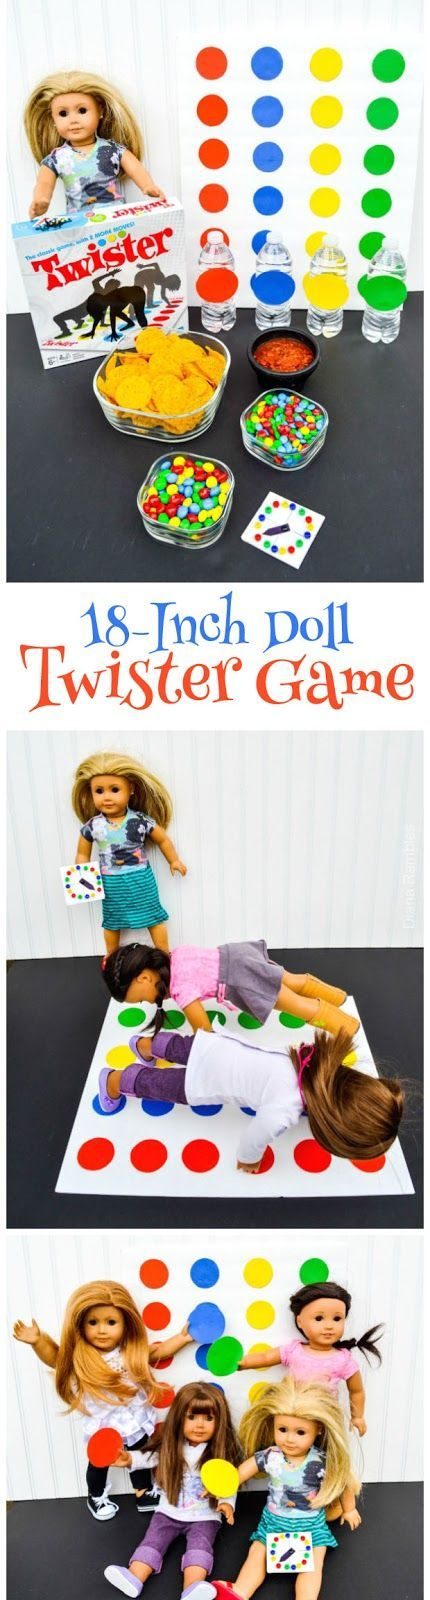 18-Inch Doll Twister Game Night  AD - Learn how to make this Twister Game for your American Girl Doll and have fun throwing a party too!